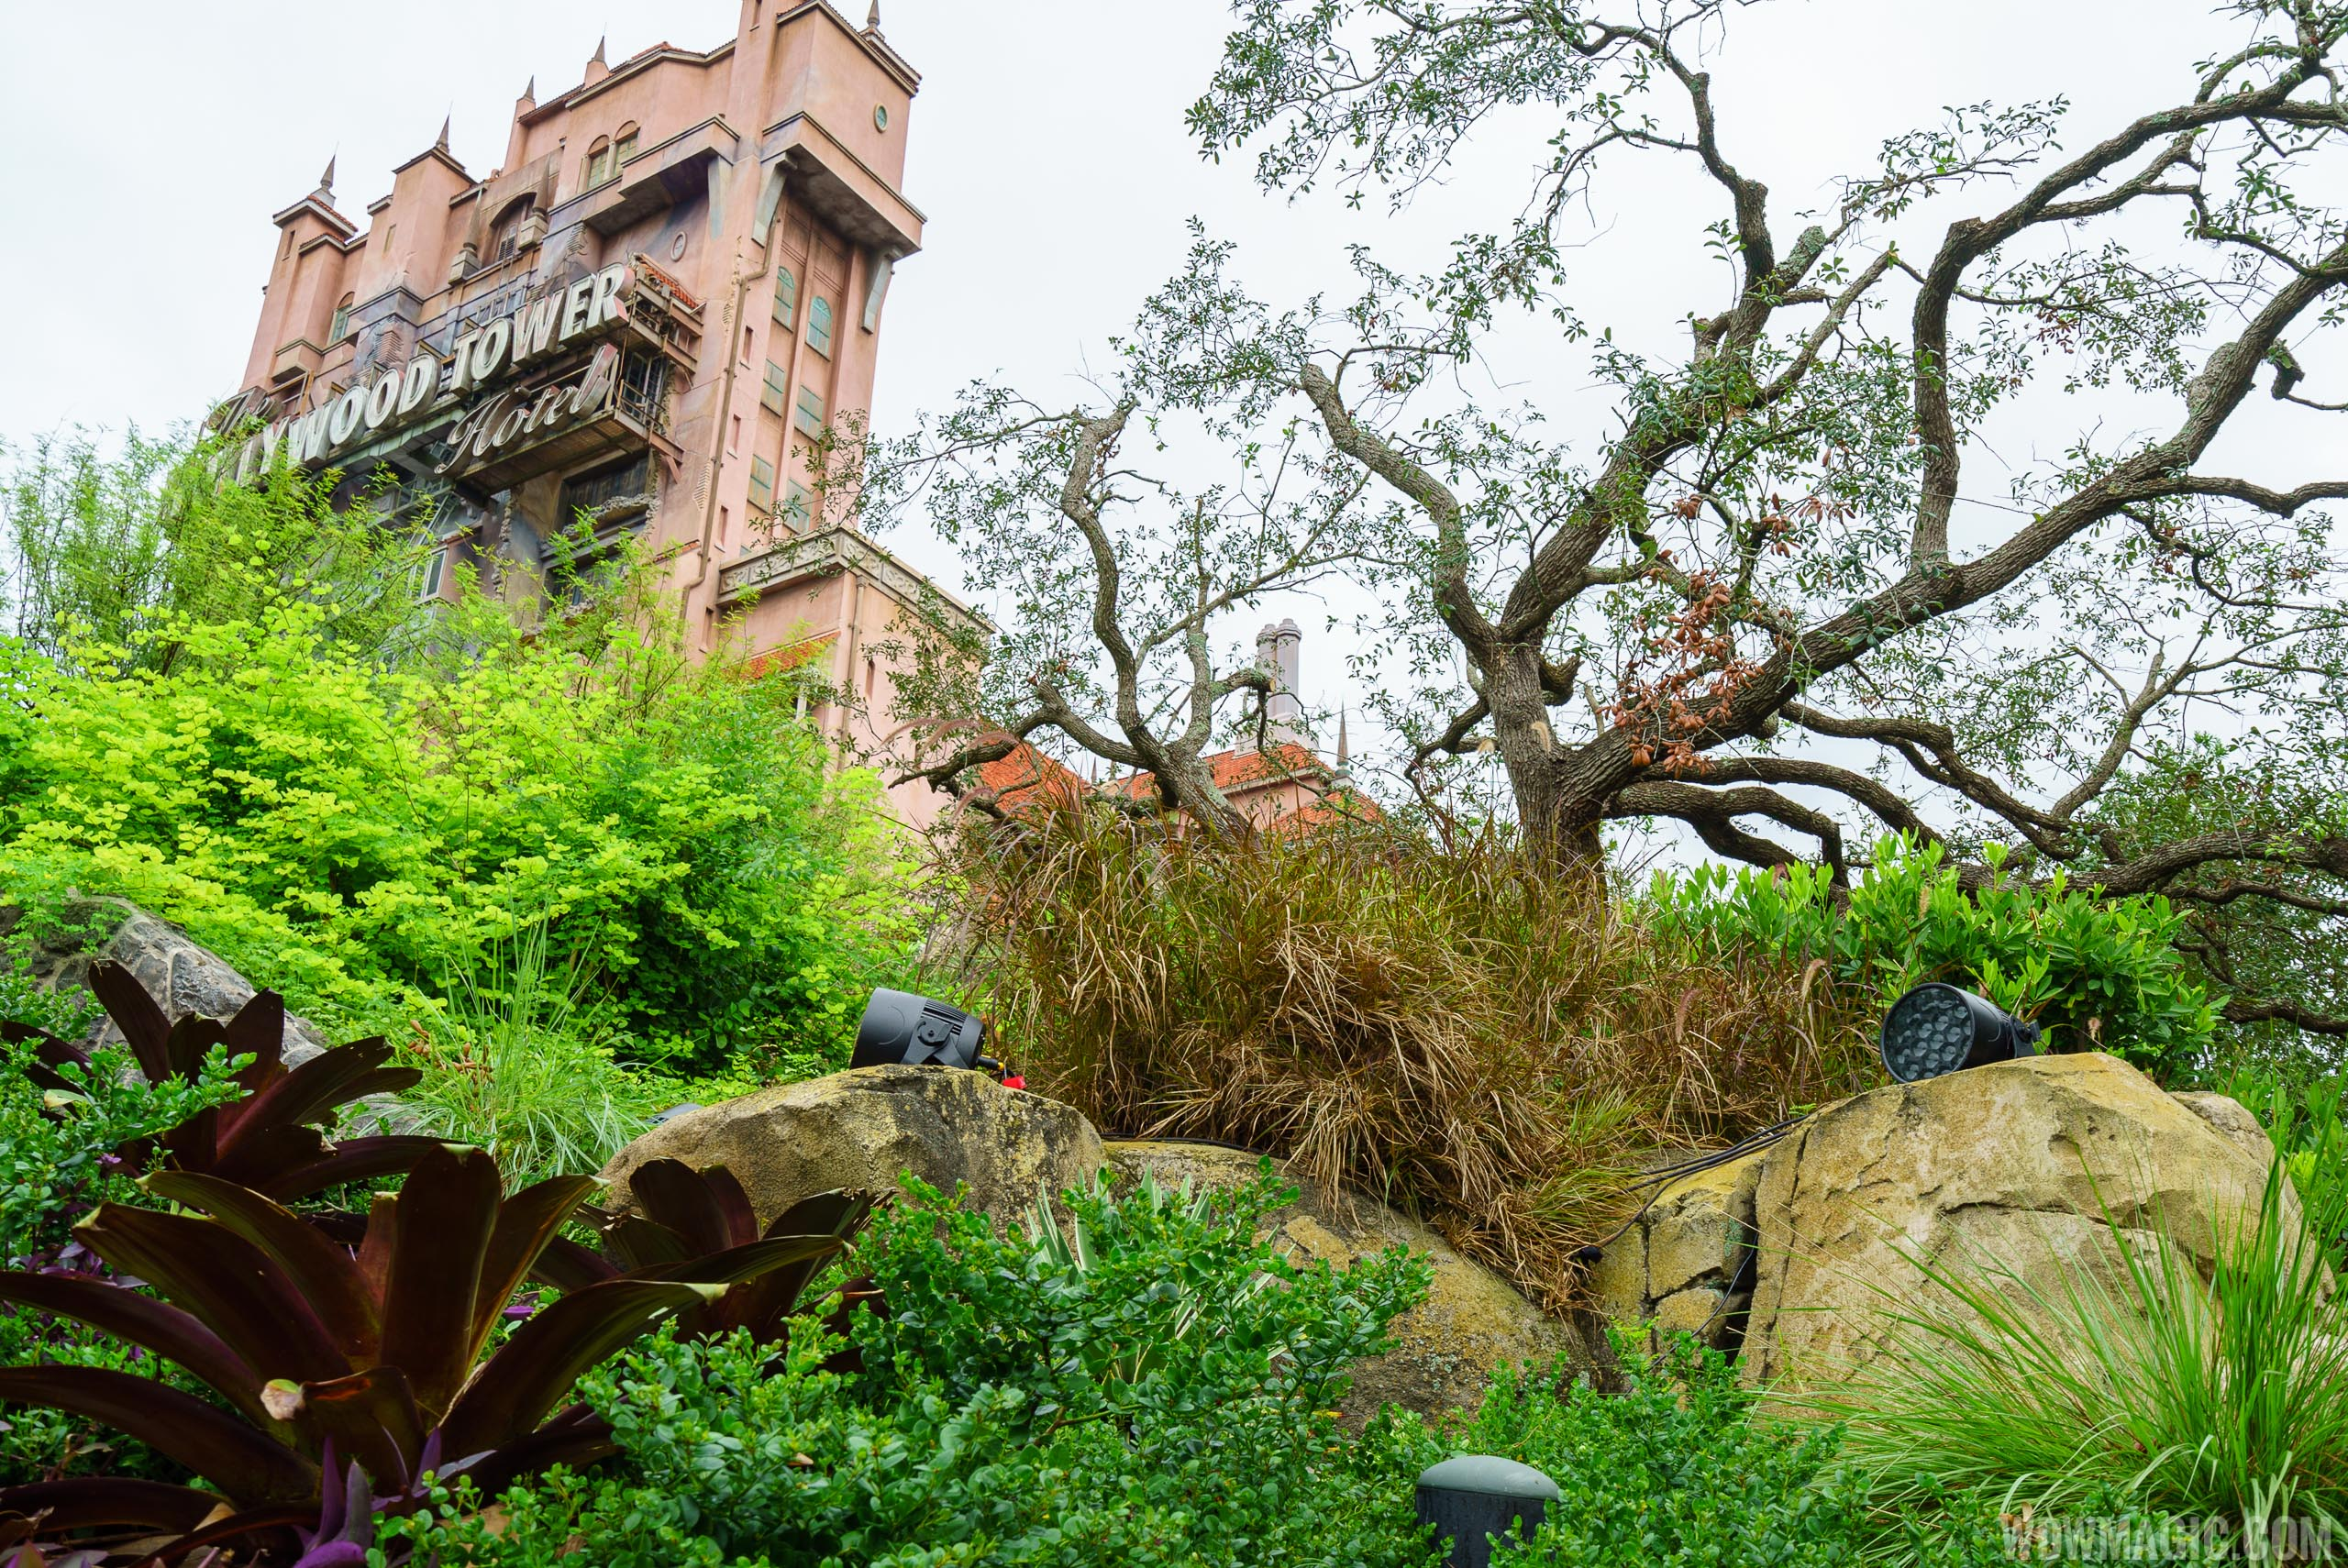 New lighting units around the Hollywood Tower Hotel